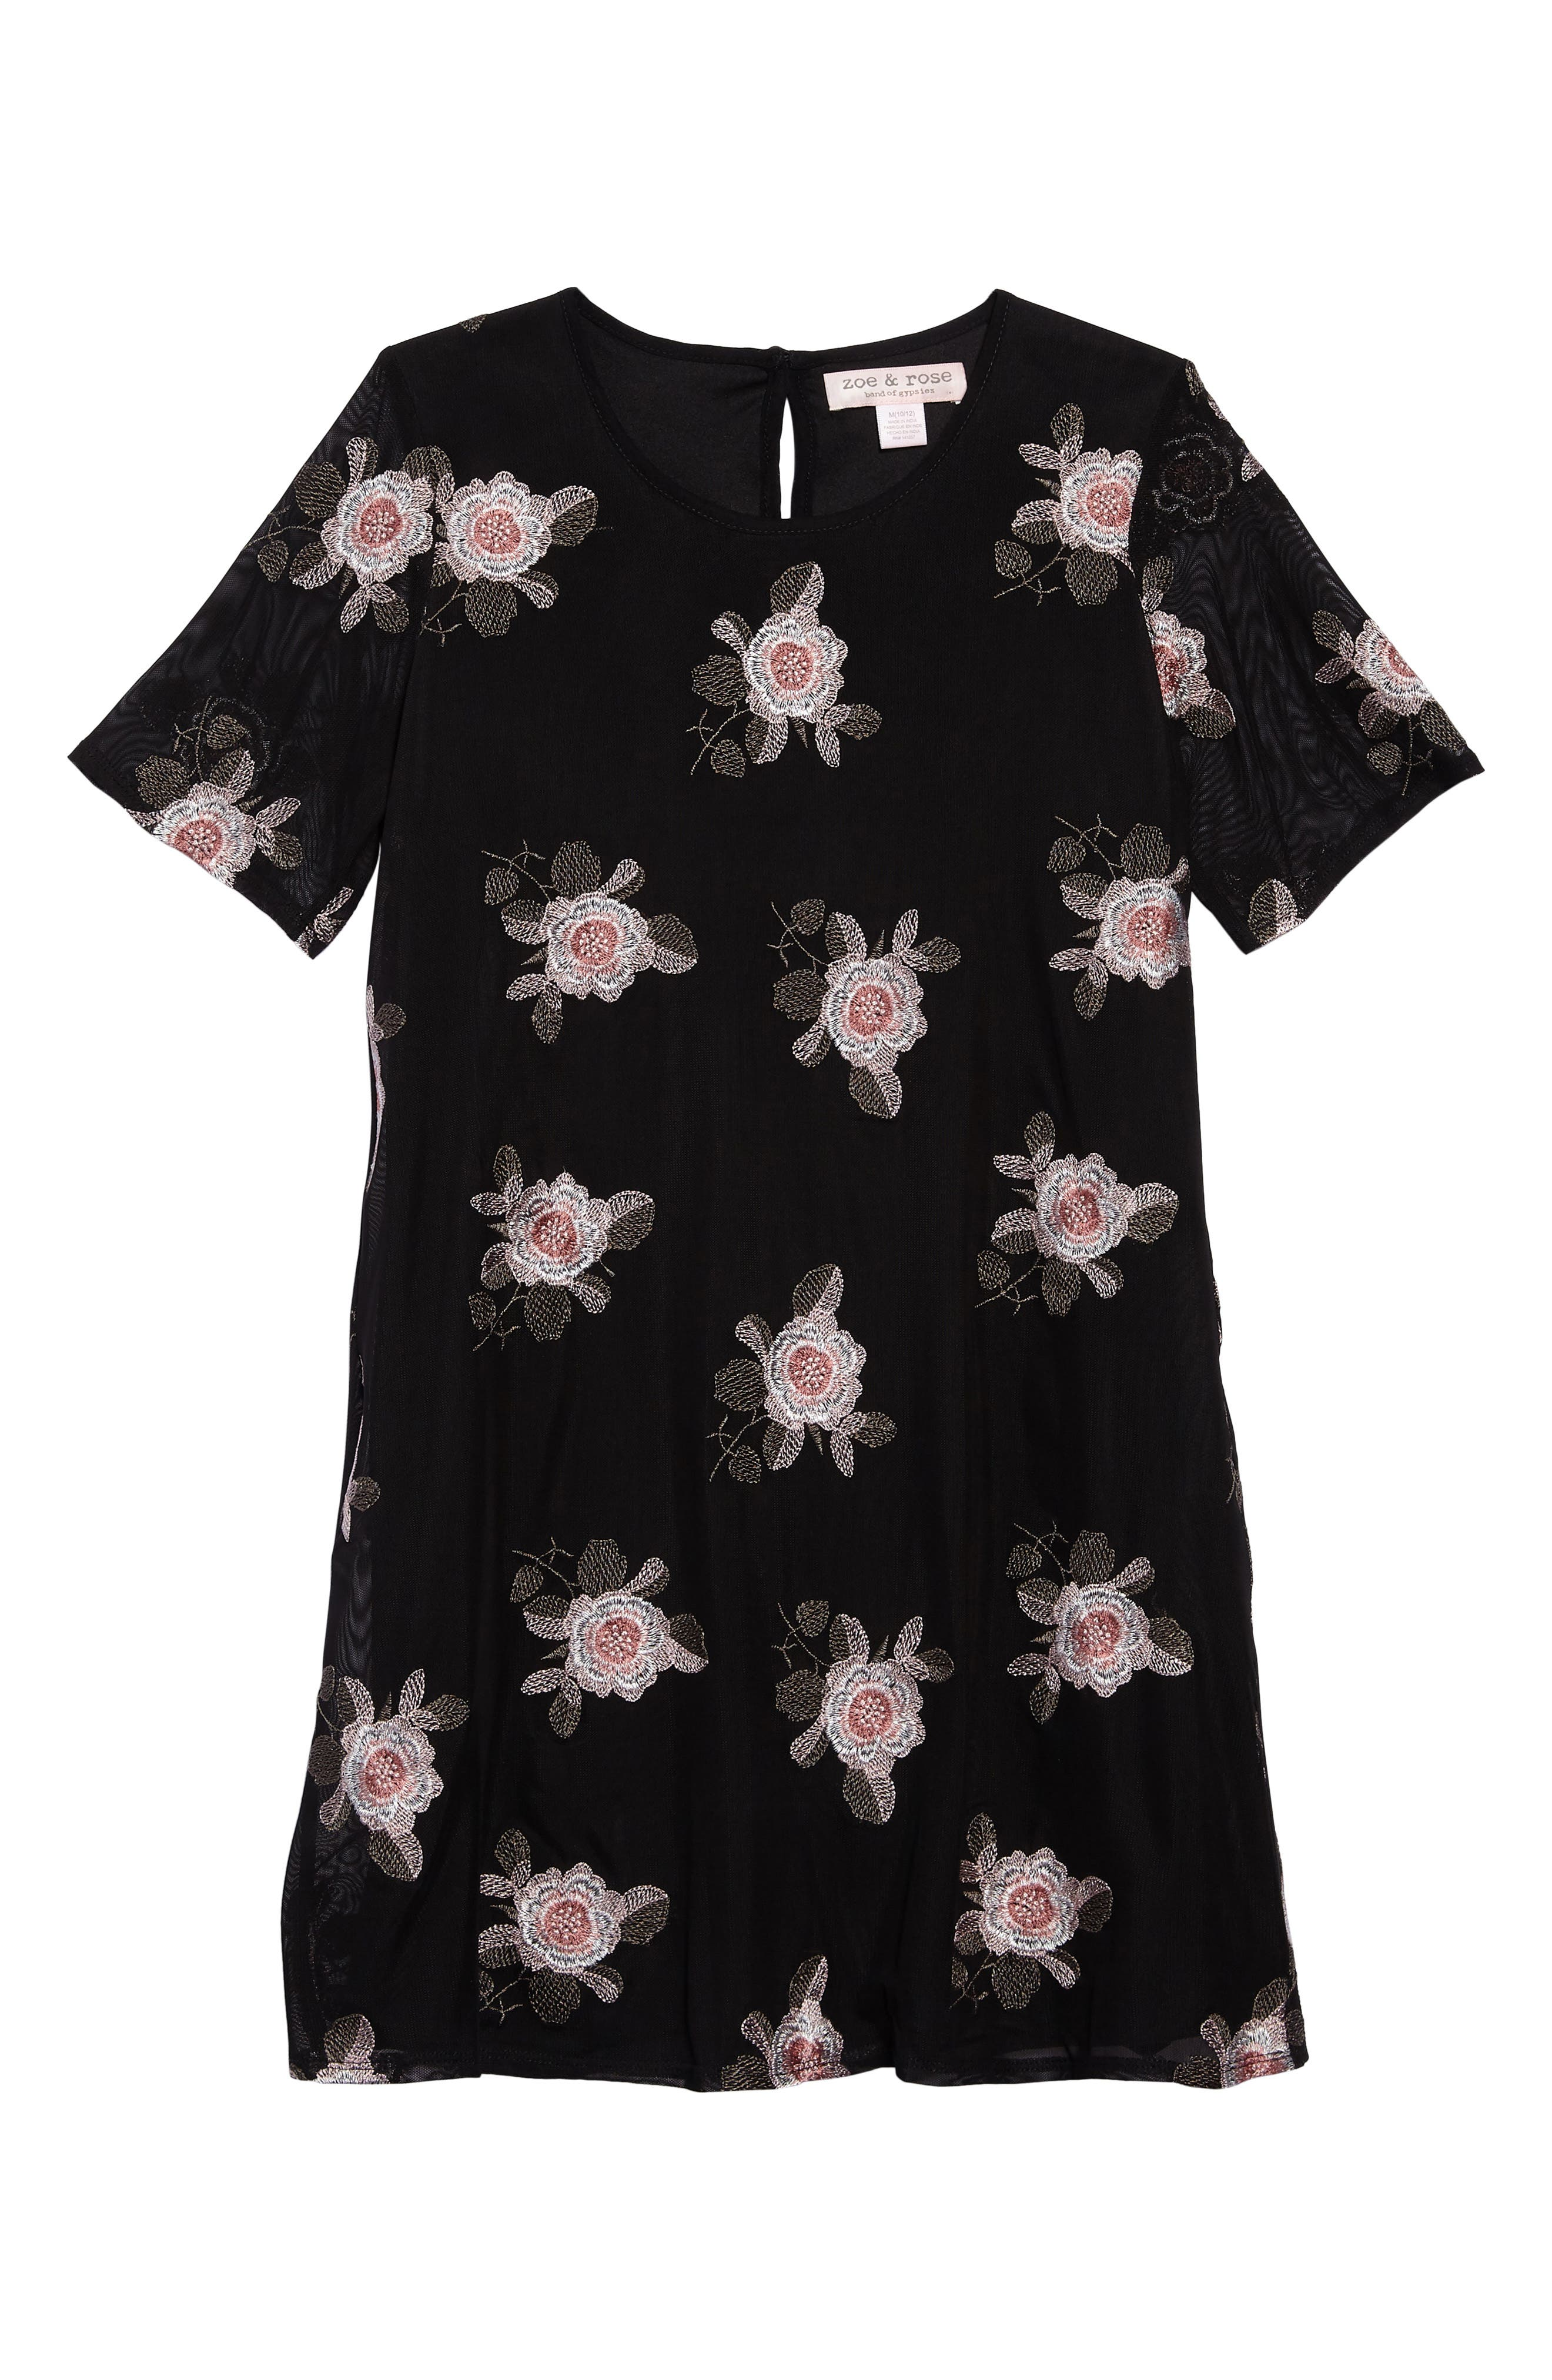 Flower Embroidered Mesh Dress,                         Main,                         color, Black/ Coral